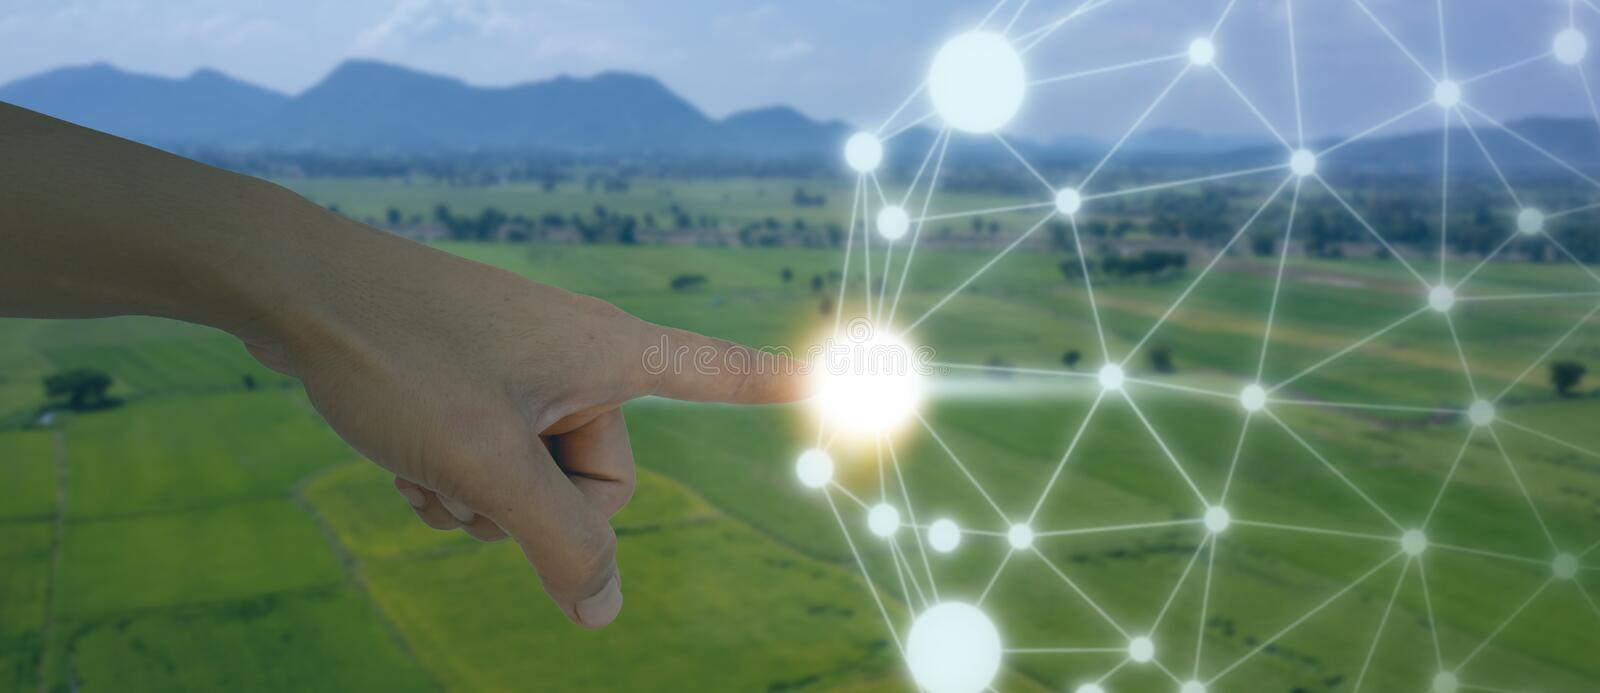 Iot, internet of things, agriculture concept, Smart Robotic artificial intelligence/ ai use for management , control , monitorin royalty free stock images